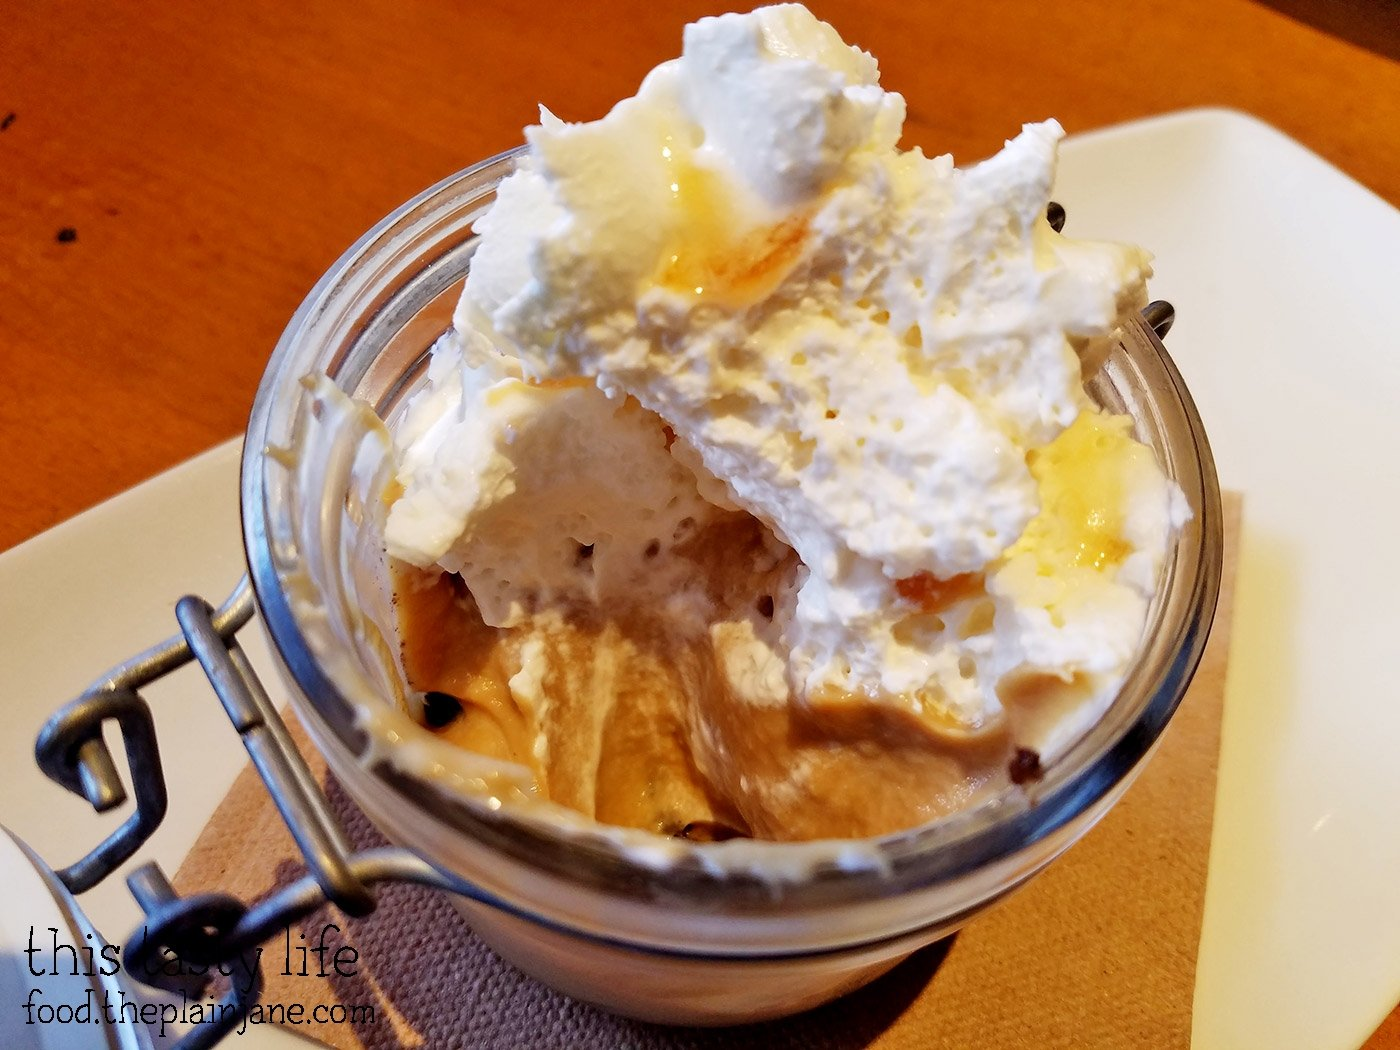 California Pizza Kitchen Dessert there's more than just pizza at california pizza kitchen - this